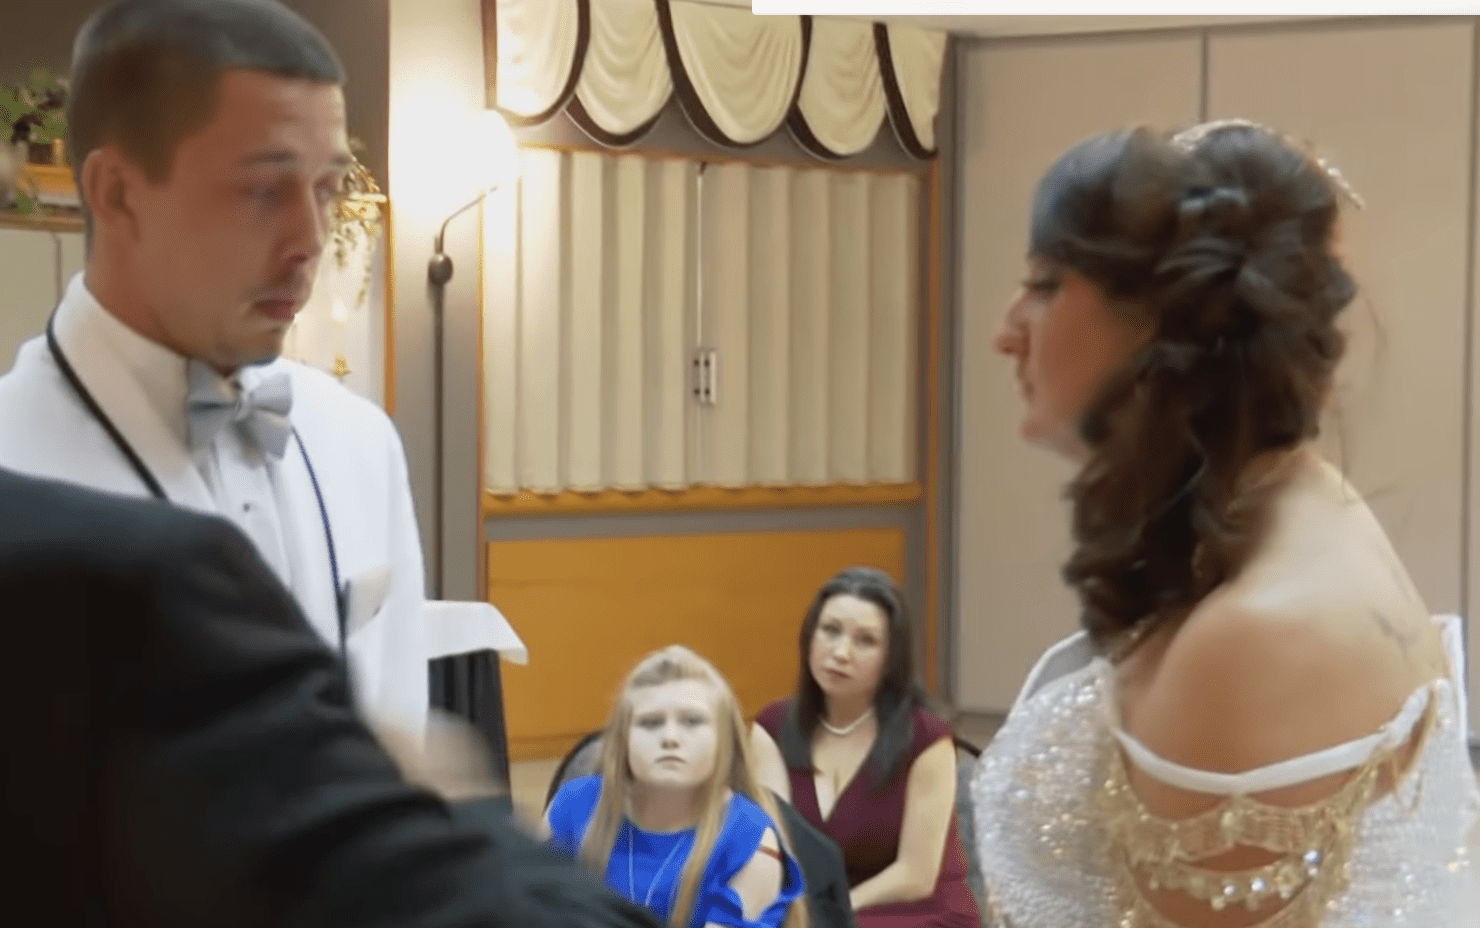 Sam and Cearia saying their vows. | Photo: youtube.com/tlc uk